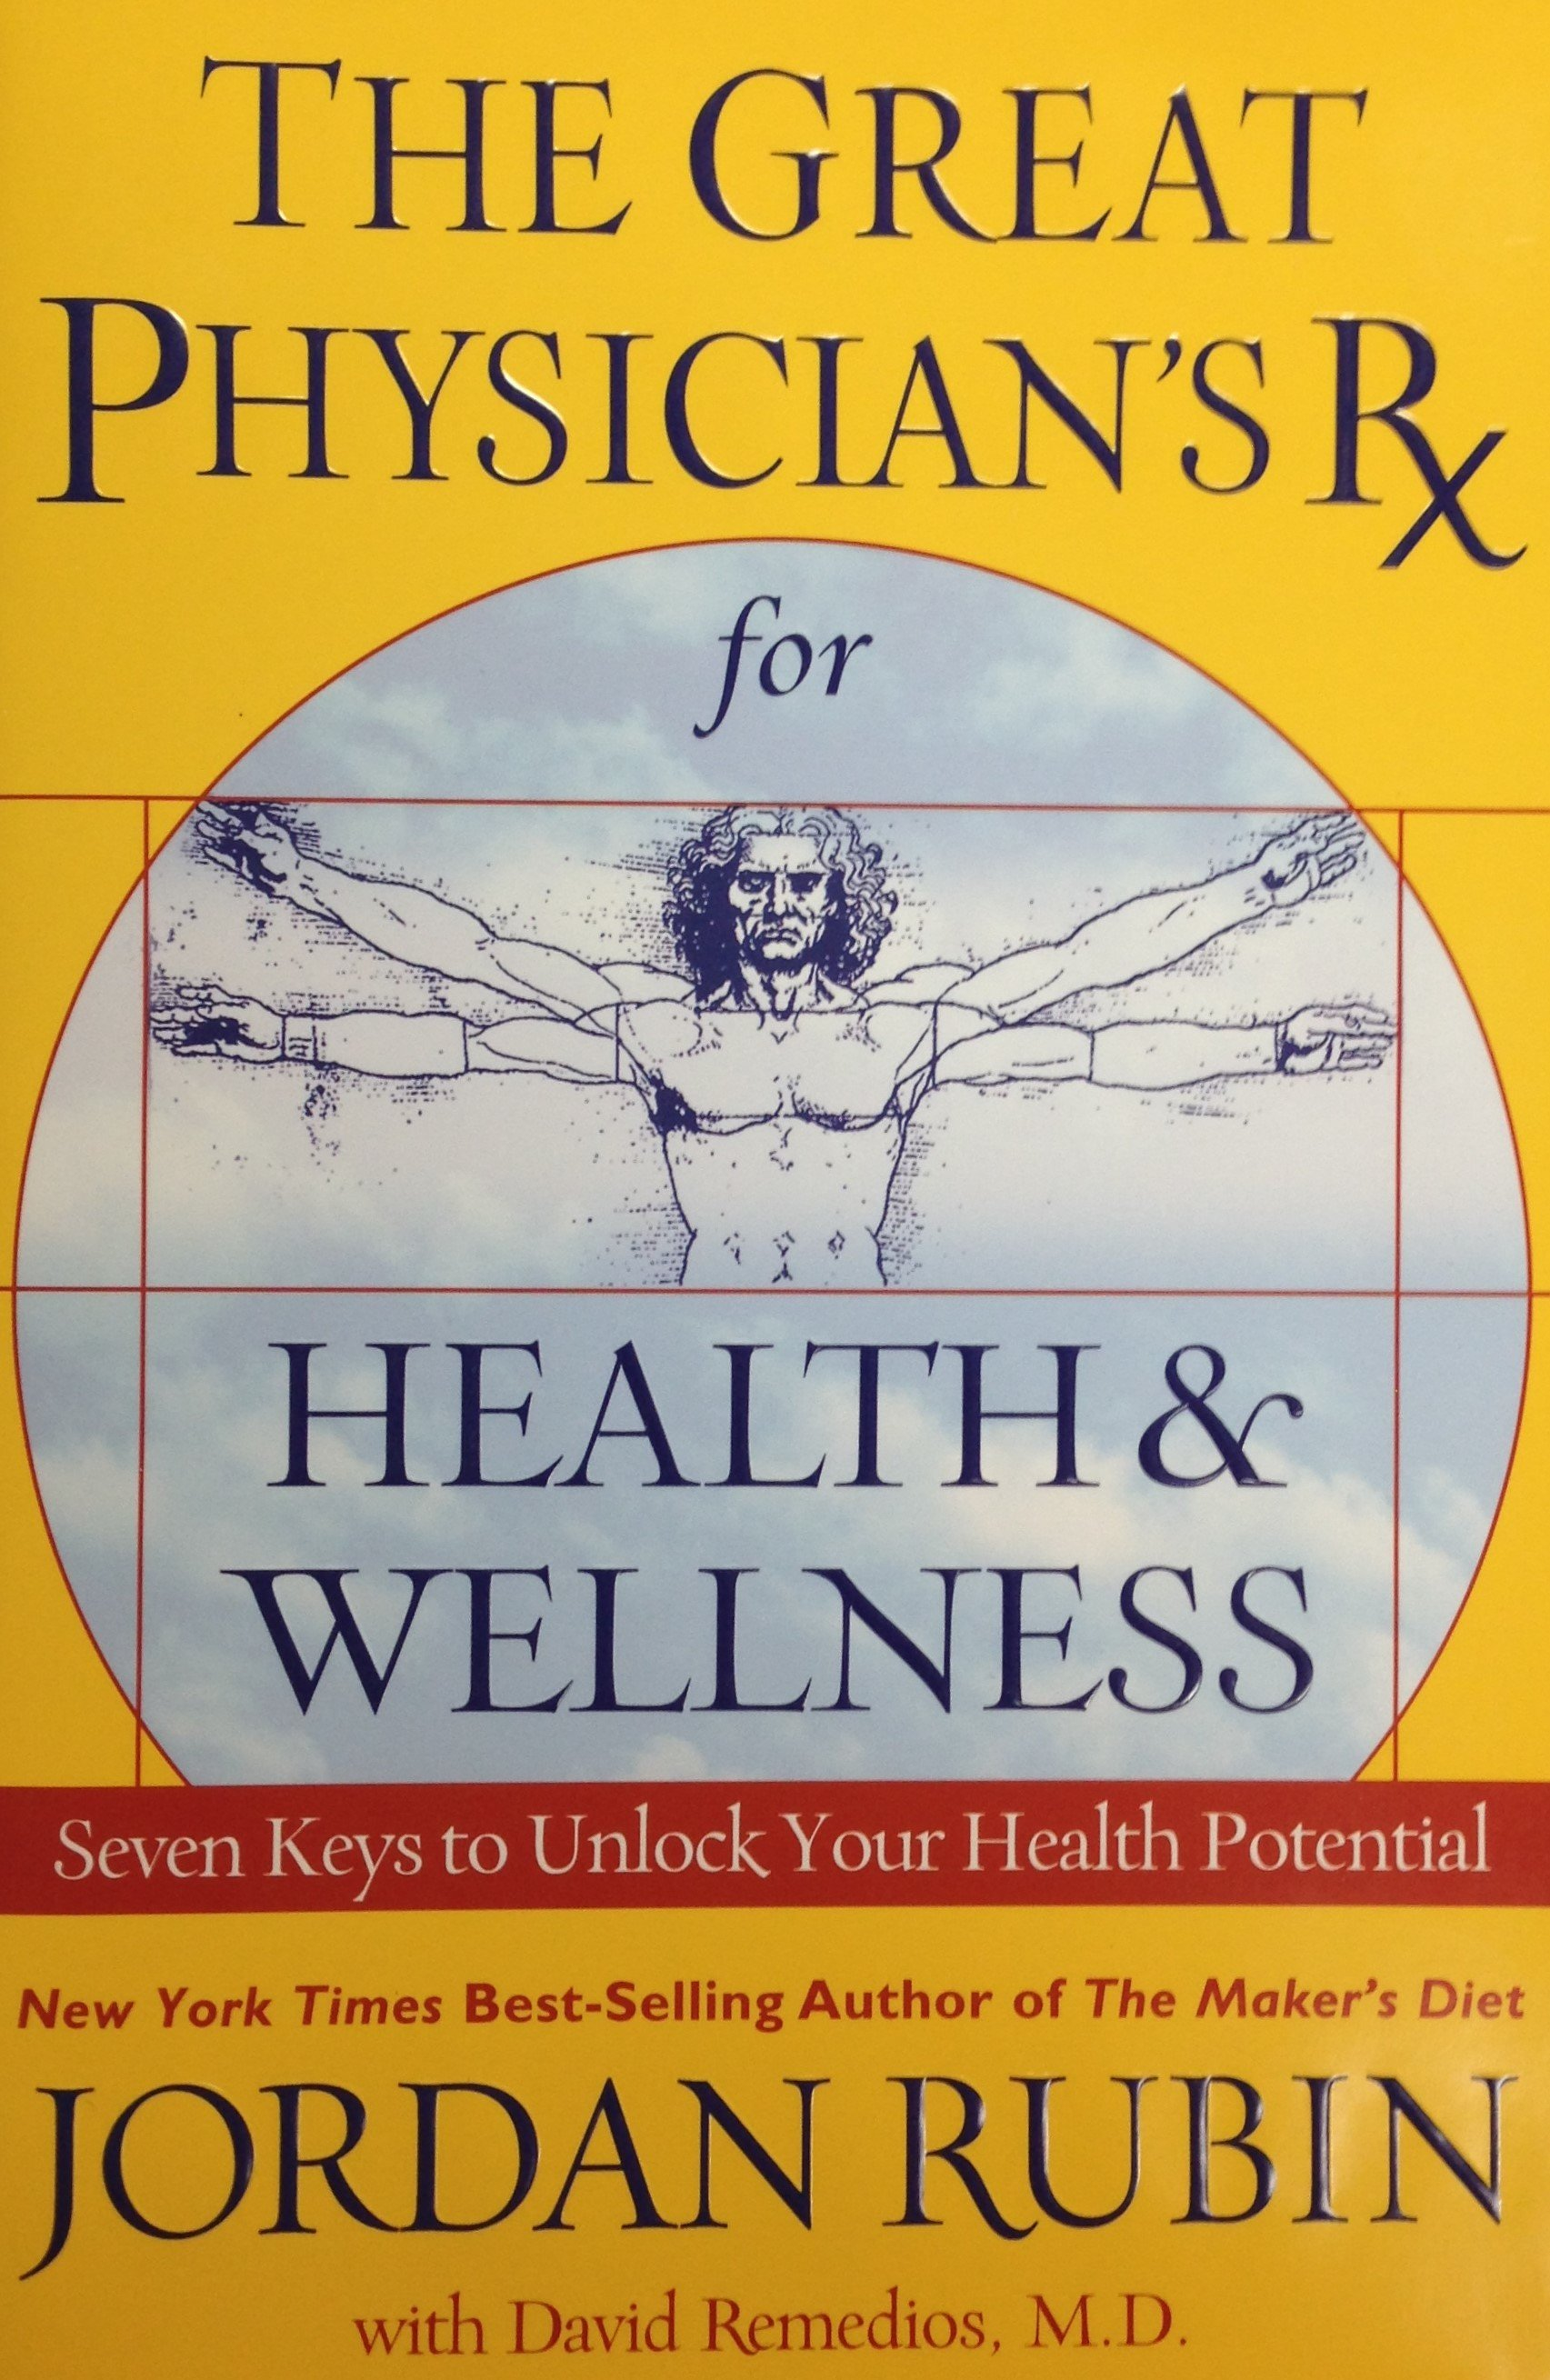 The Great Physician's Rx for Health and Wellness:  Seven Keys to Unlock Your Health Potential by Jordan Rubin (Hardback) 00096